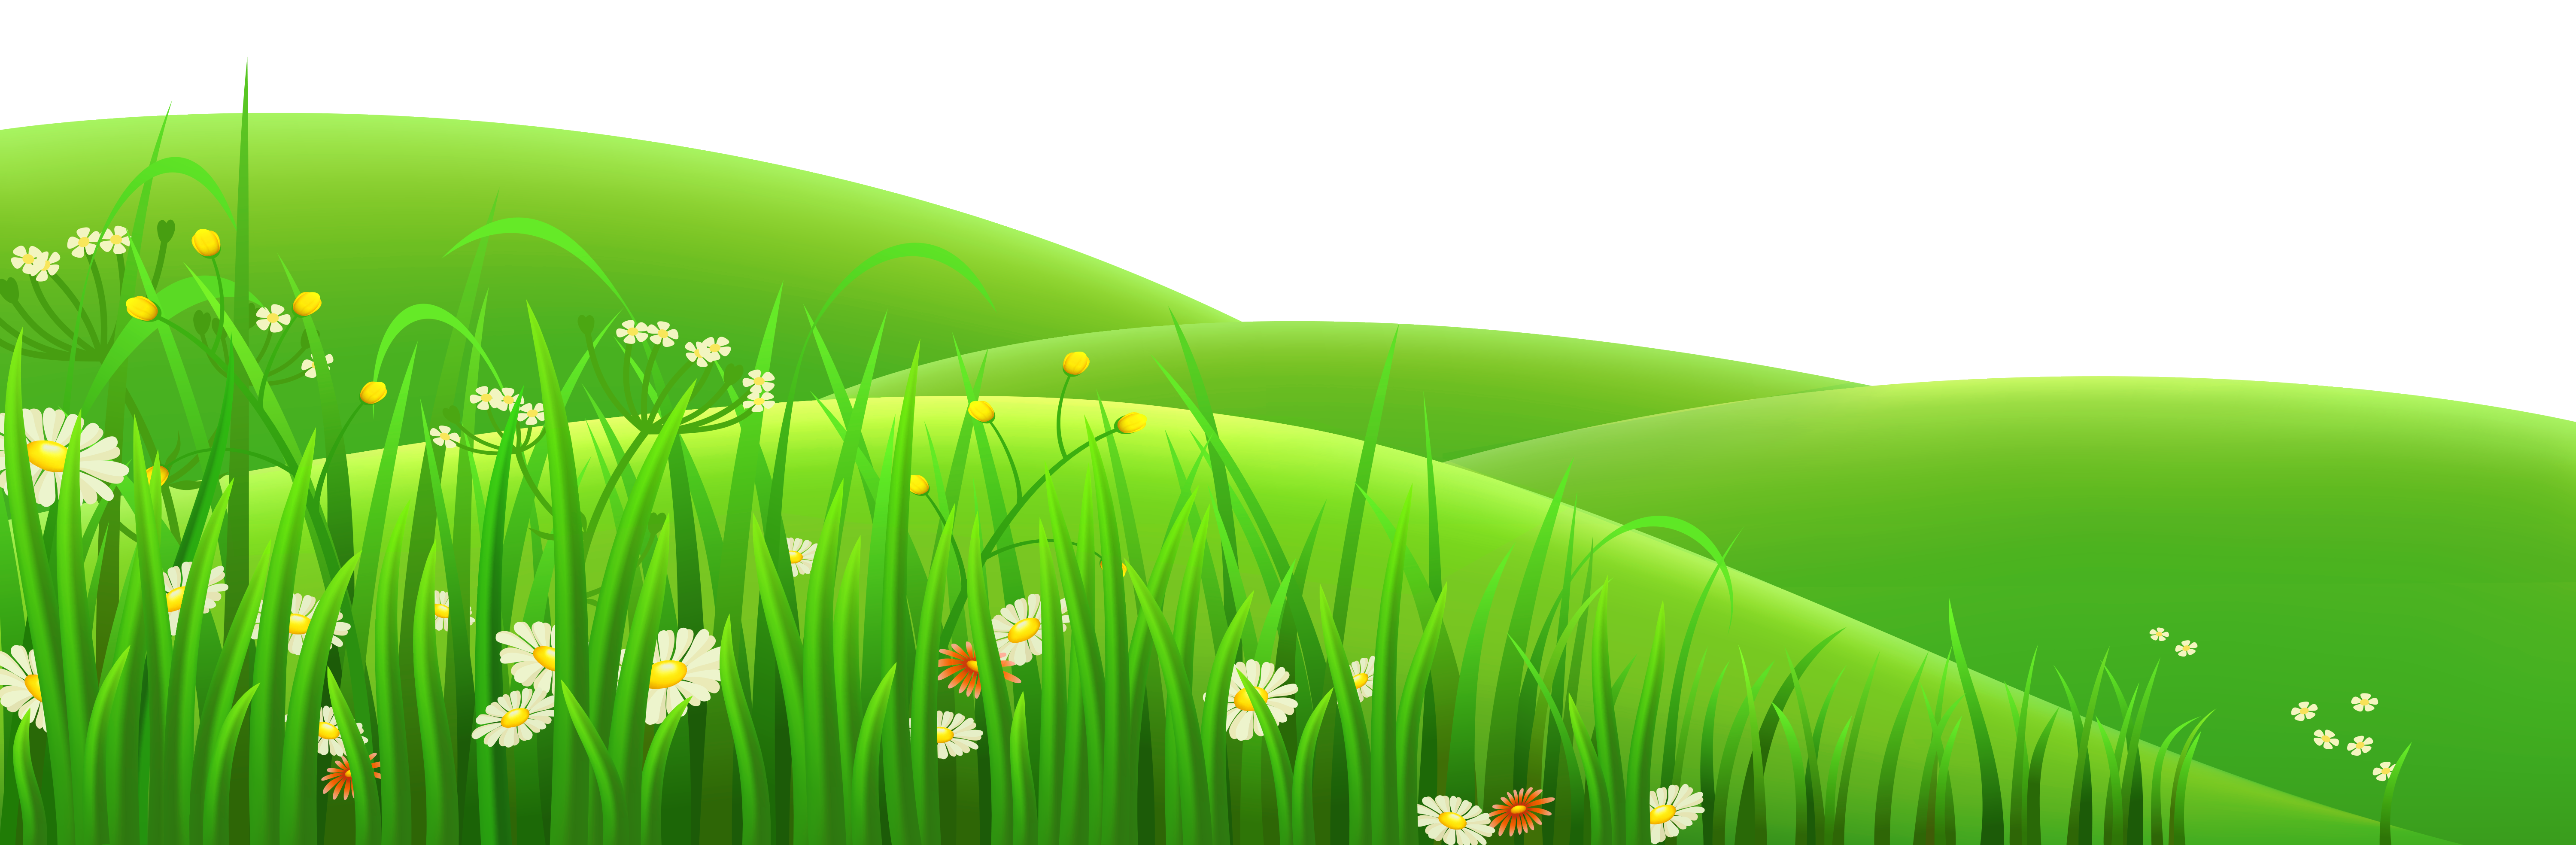 Free Grass Png Transparent, Download Free Clip Art, Free.